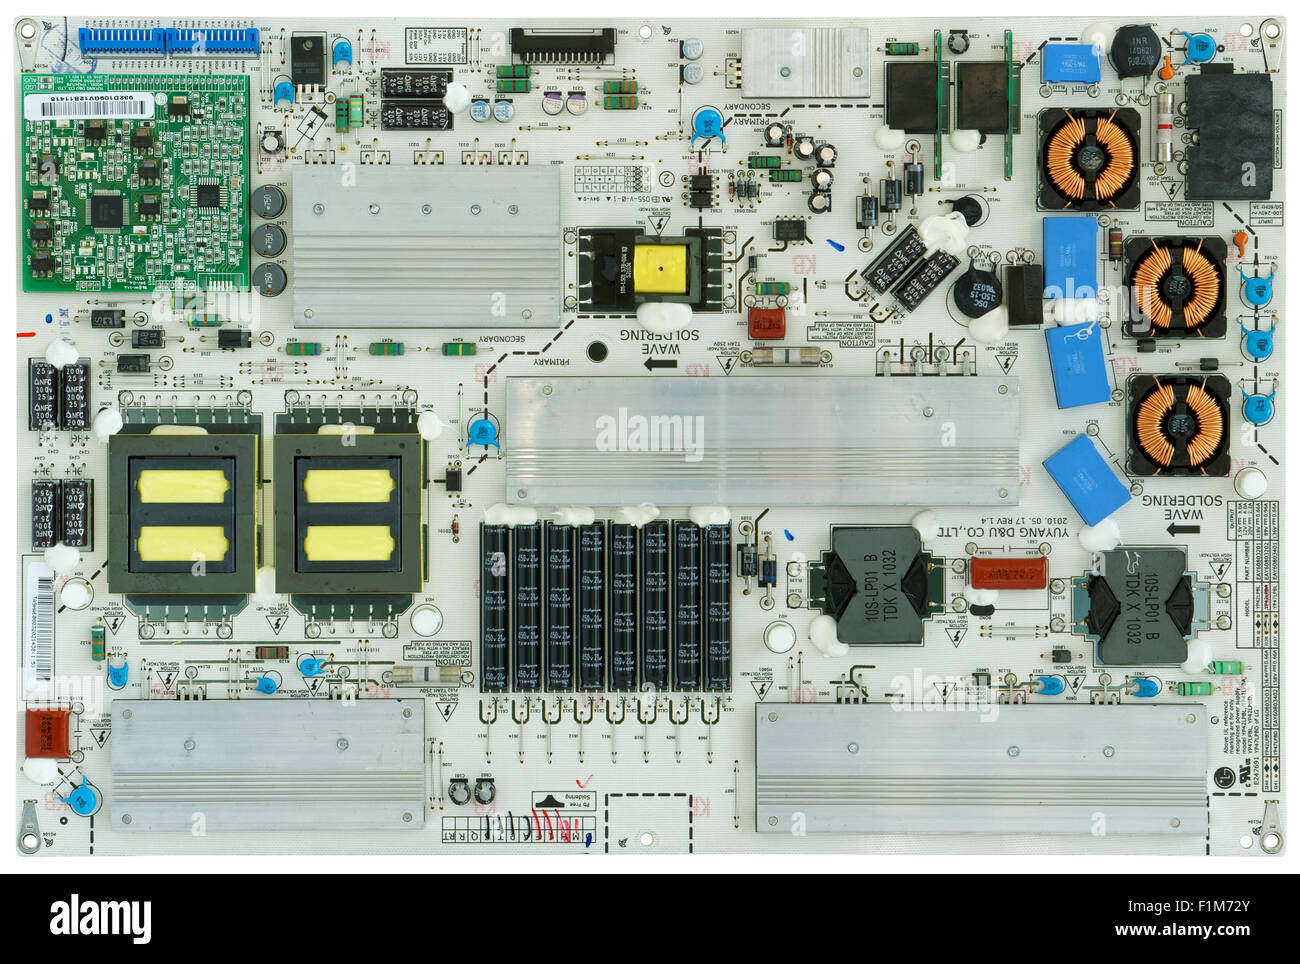 Printed Circuit Board Lg Tv Not Lossing Wiring Diagram Modern Of The Powerful Power Supply For Rh Alamy Com